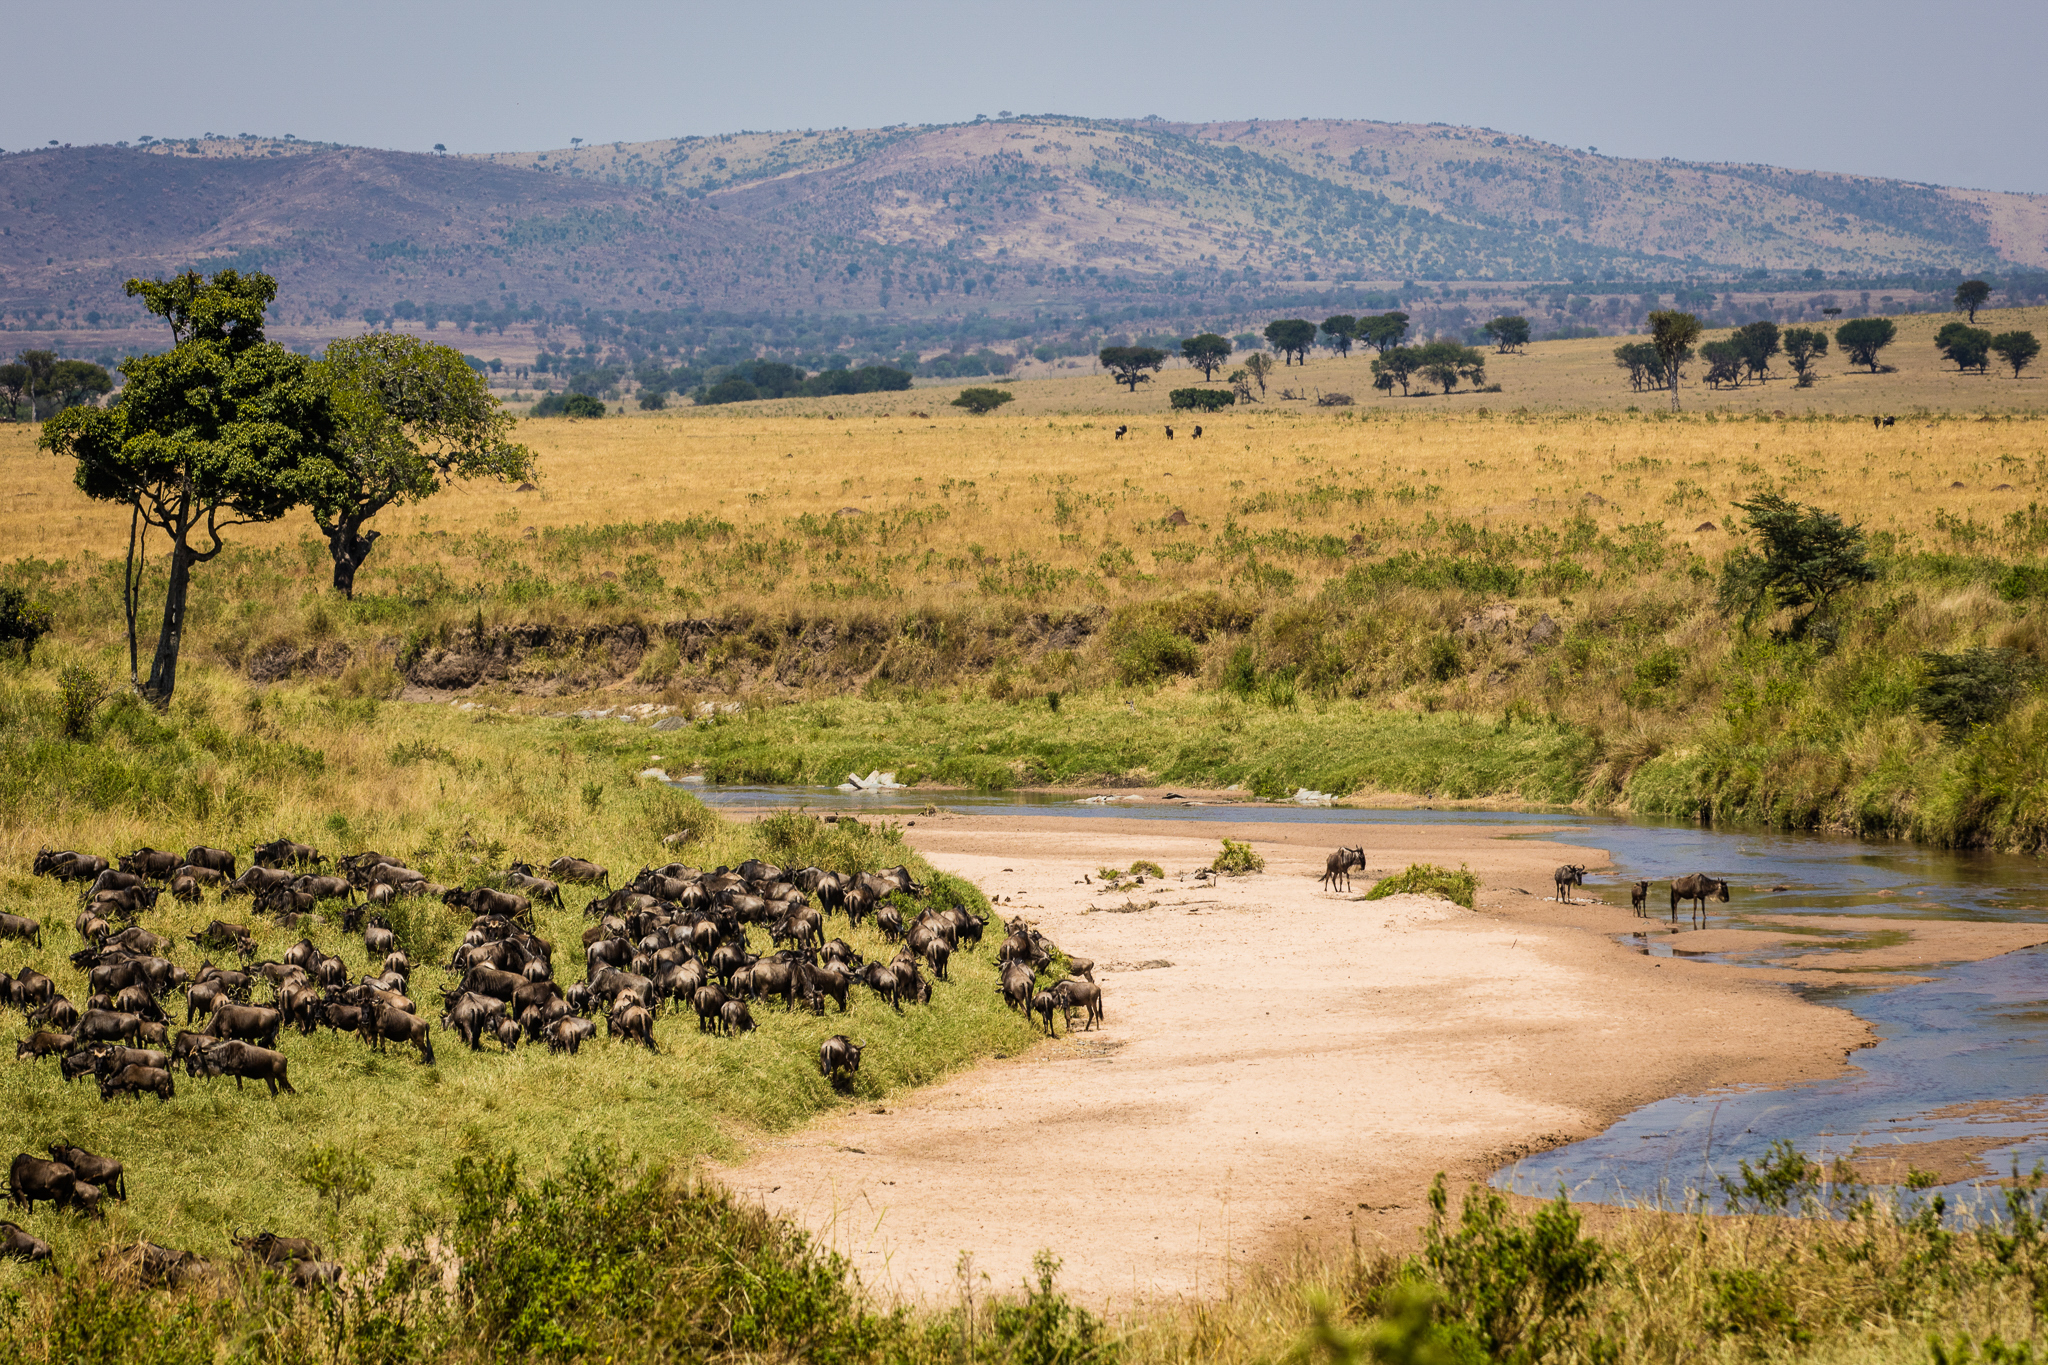 Wildebeest pause before crossing the Sand River. While the Masai Mara's resident wildebeest are all but gone—their numbers decimated primarily by agricultural expansion—every year, more than a million cross the border from Tanzania's Serengeti National Park.